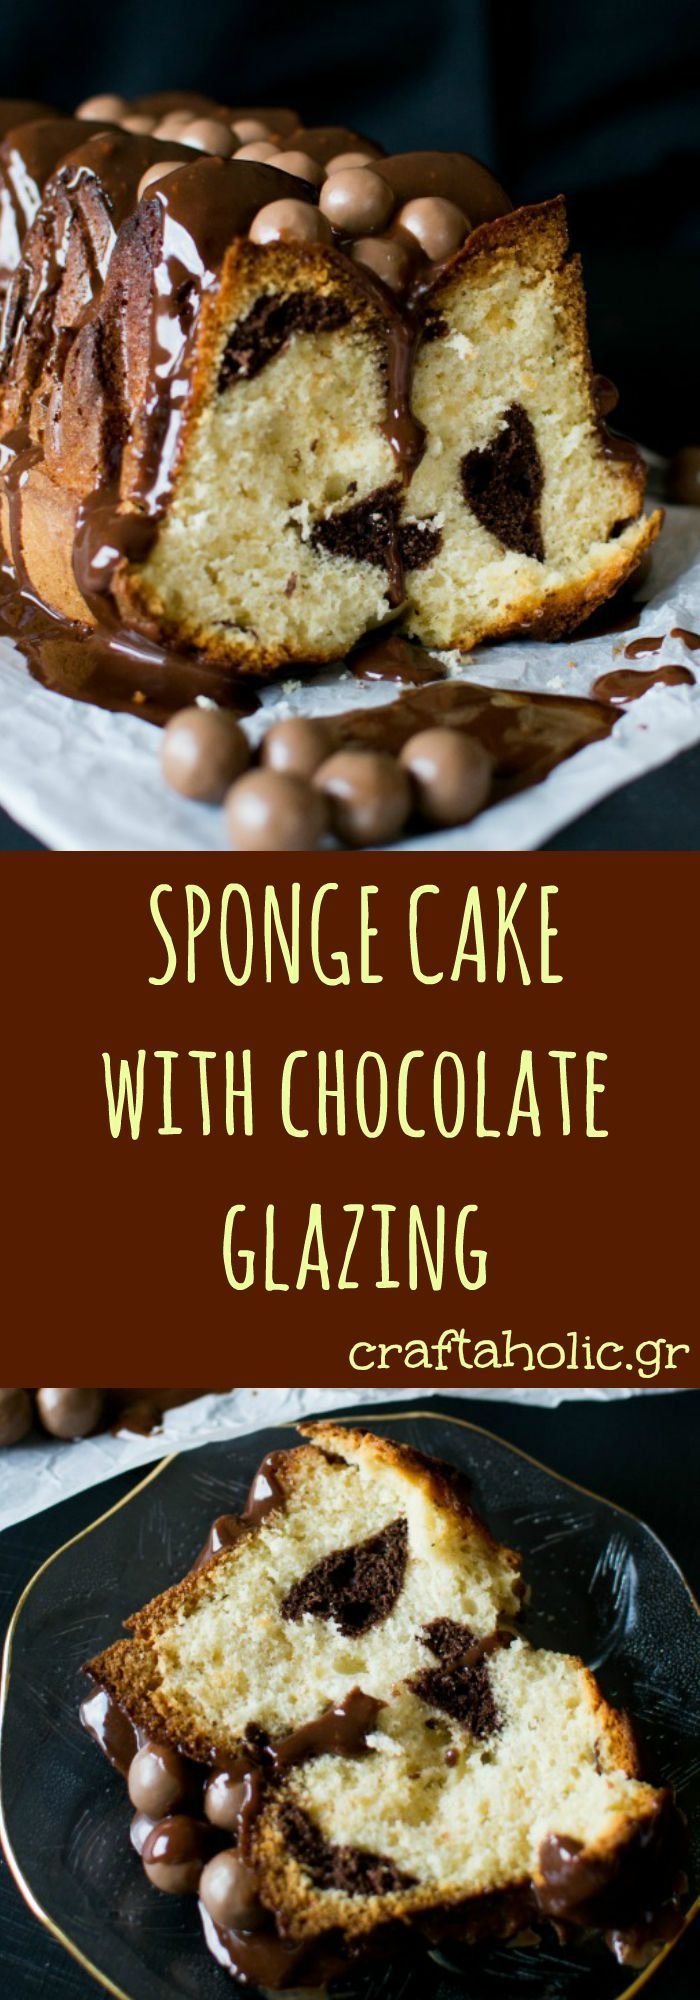 A delicious sponge cake glazed with chocolate and decorated with maltesers